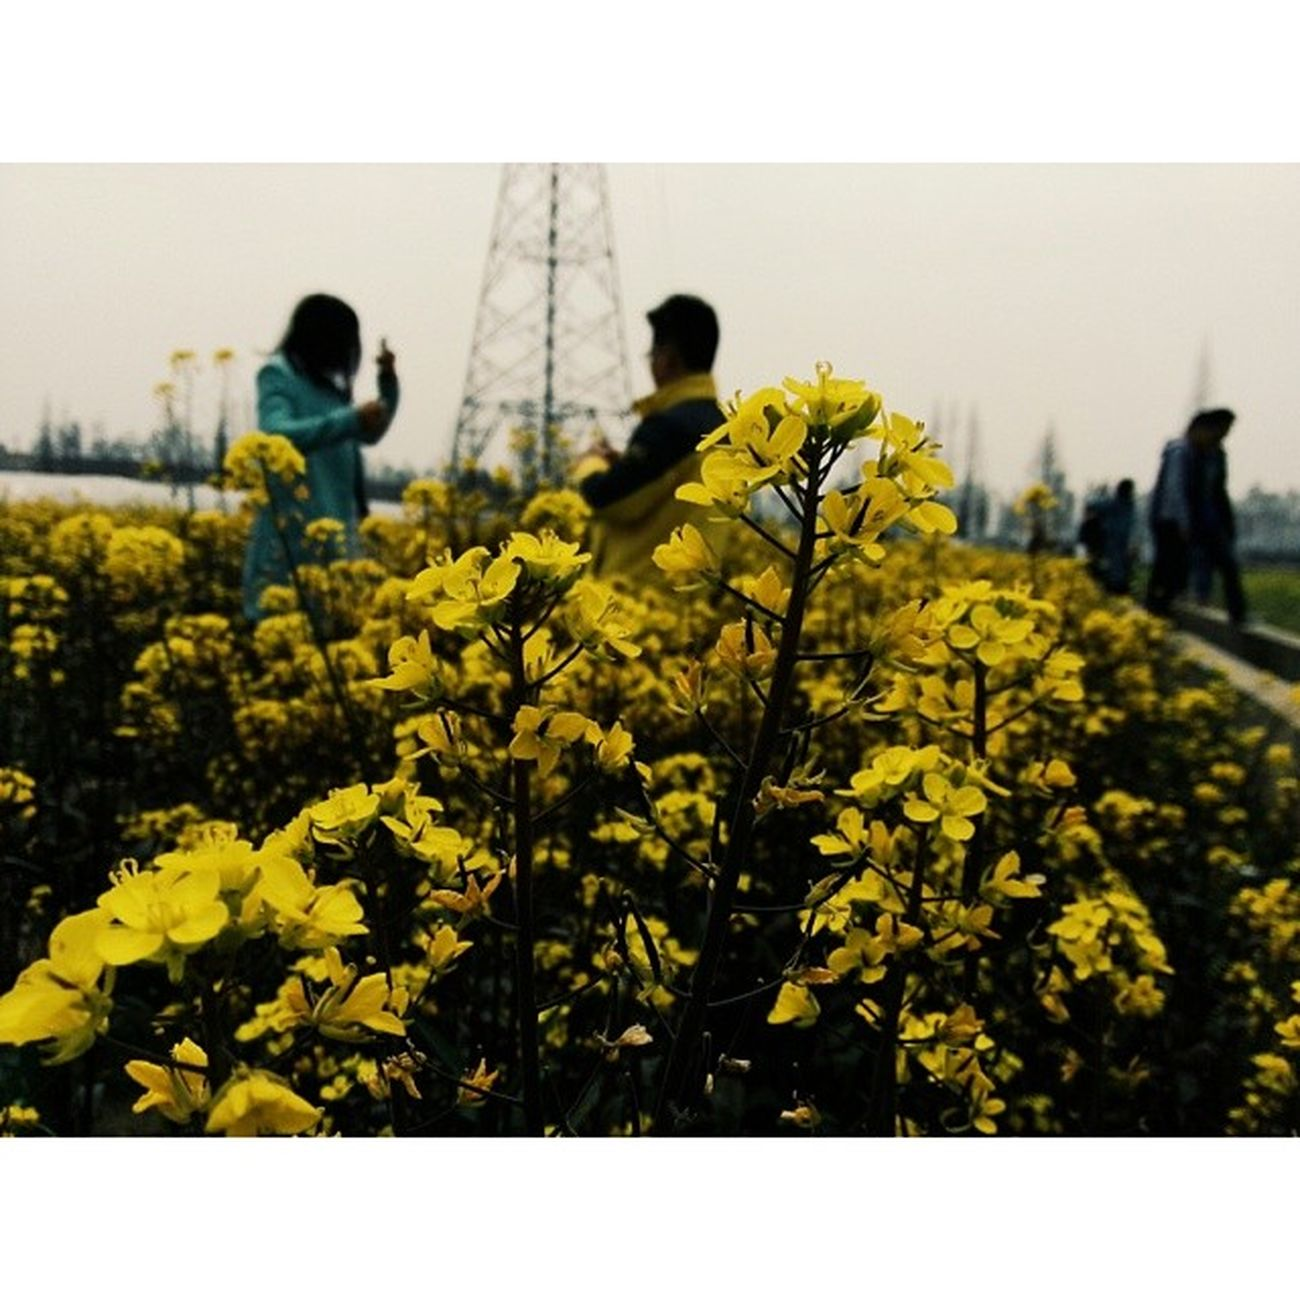 油菜花 湖南农业大学 长沙 Flowers changsha vscocam vsco hunan china 田园 colefield